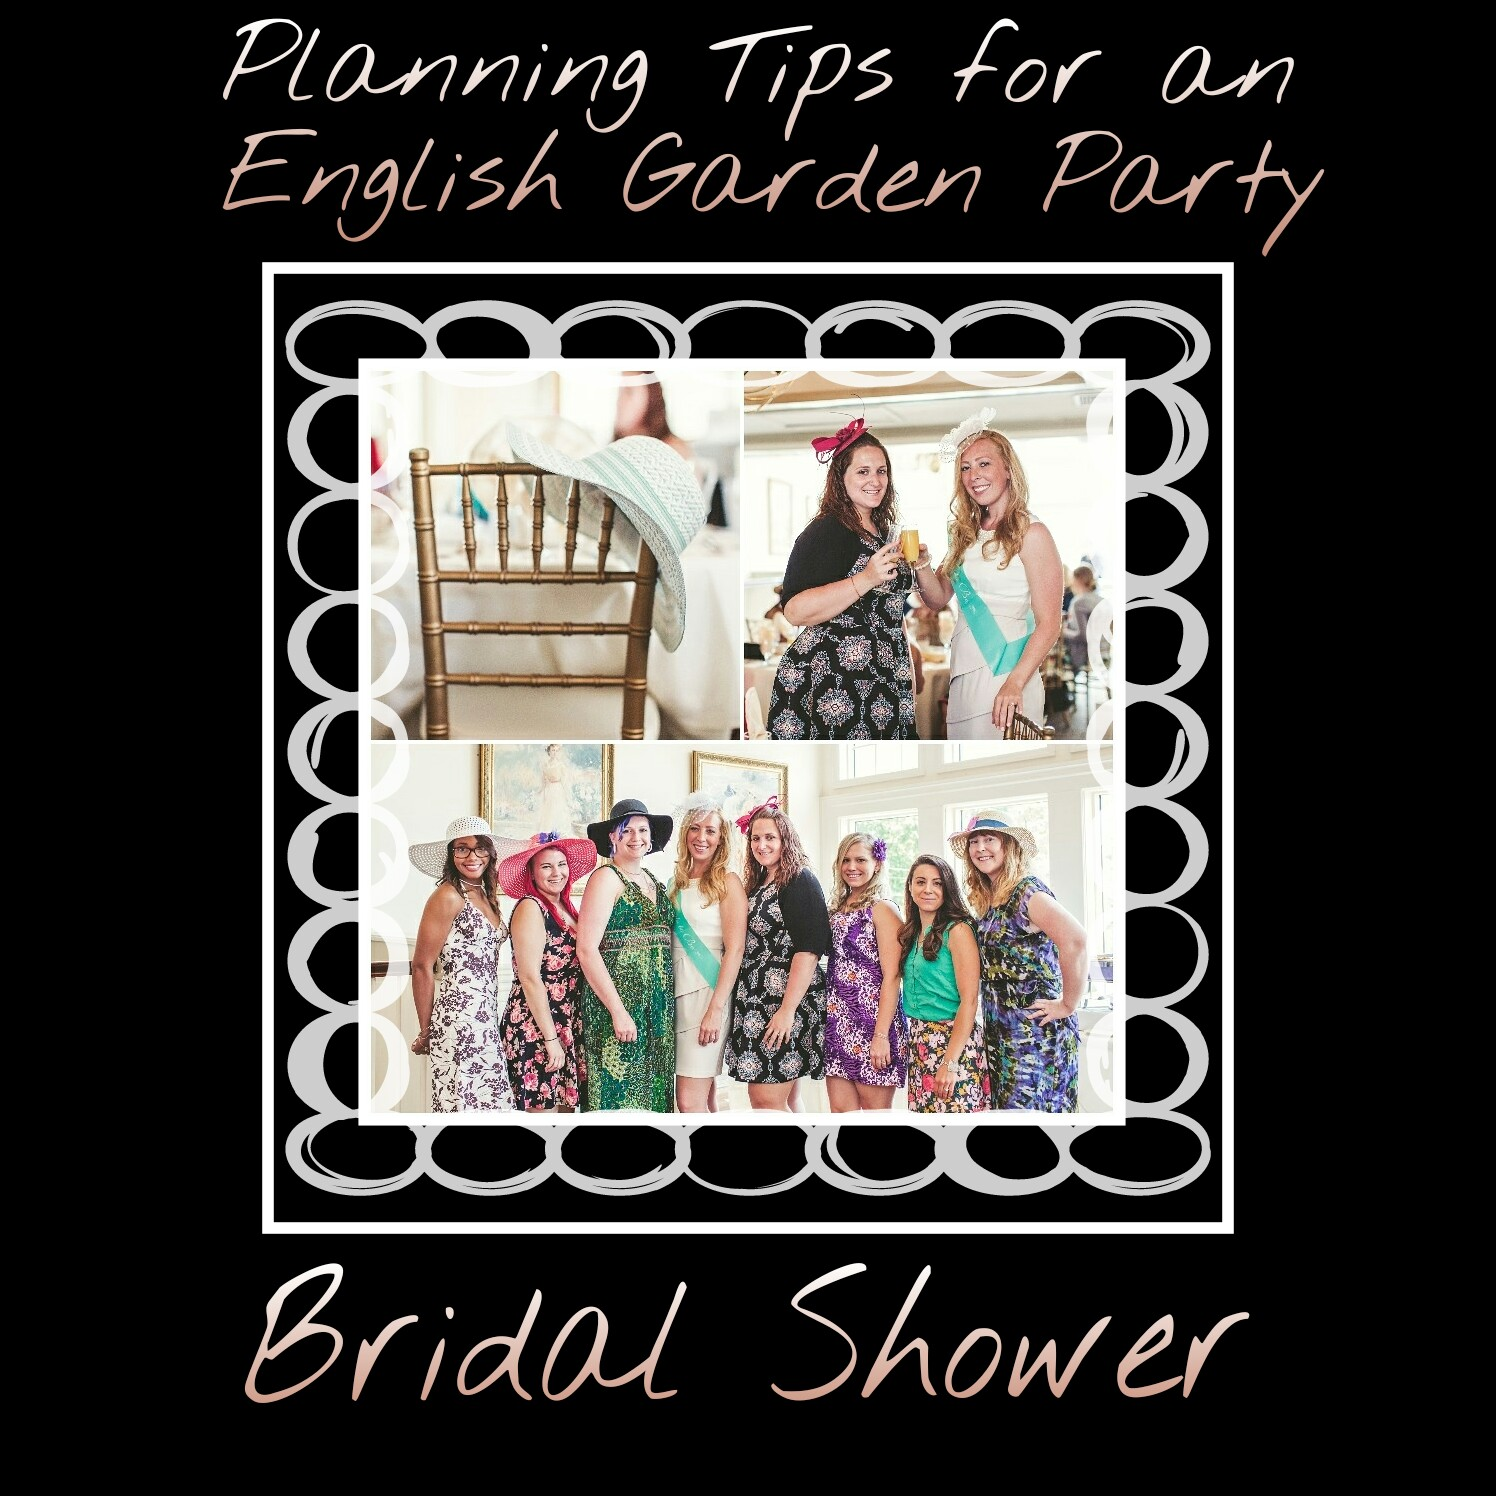 English Garden Party Bridal Shower Tips